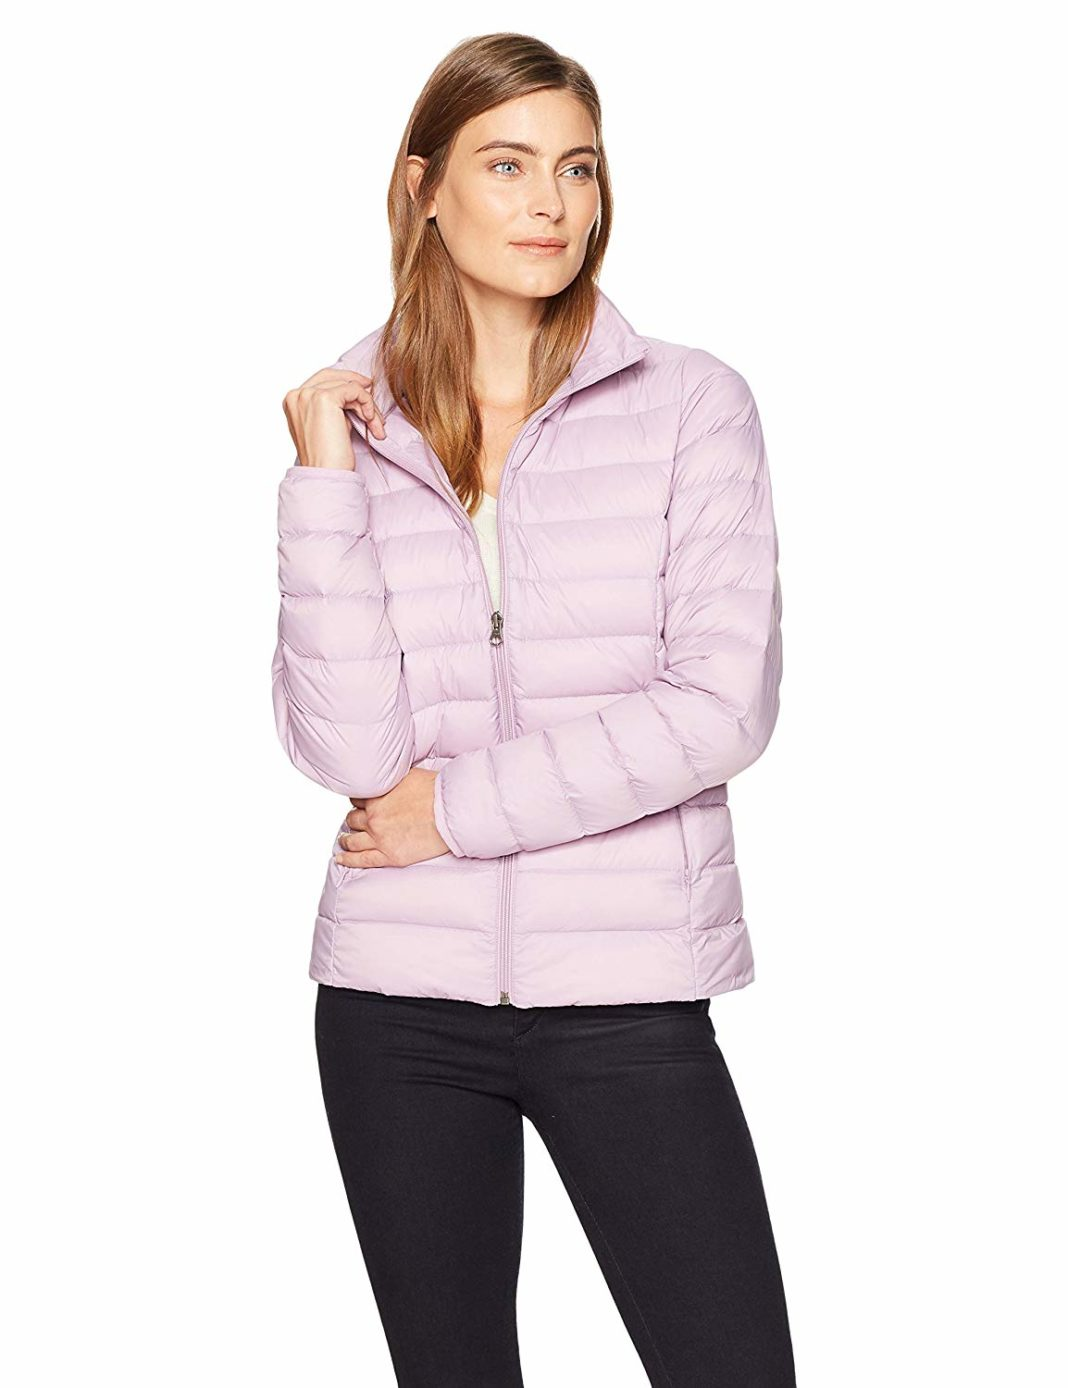 09b80eaa0 Amazon-Essentials-Womens-Lightweight-Water-Resistant-Packable-Hooded-Down- Jacket.jpg